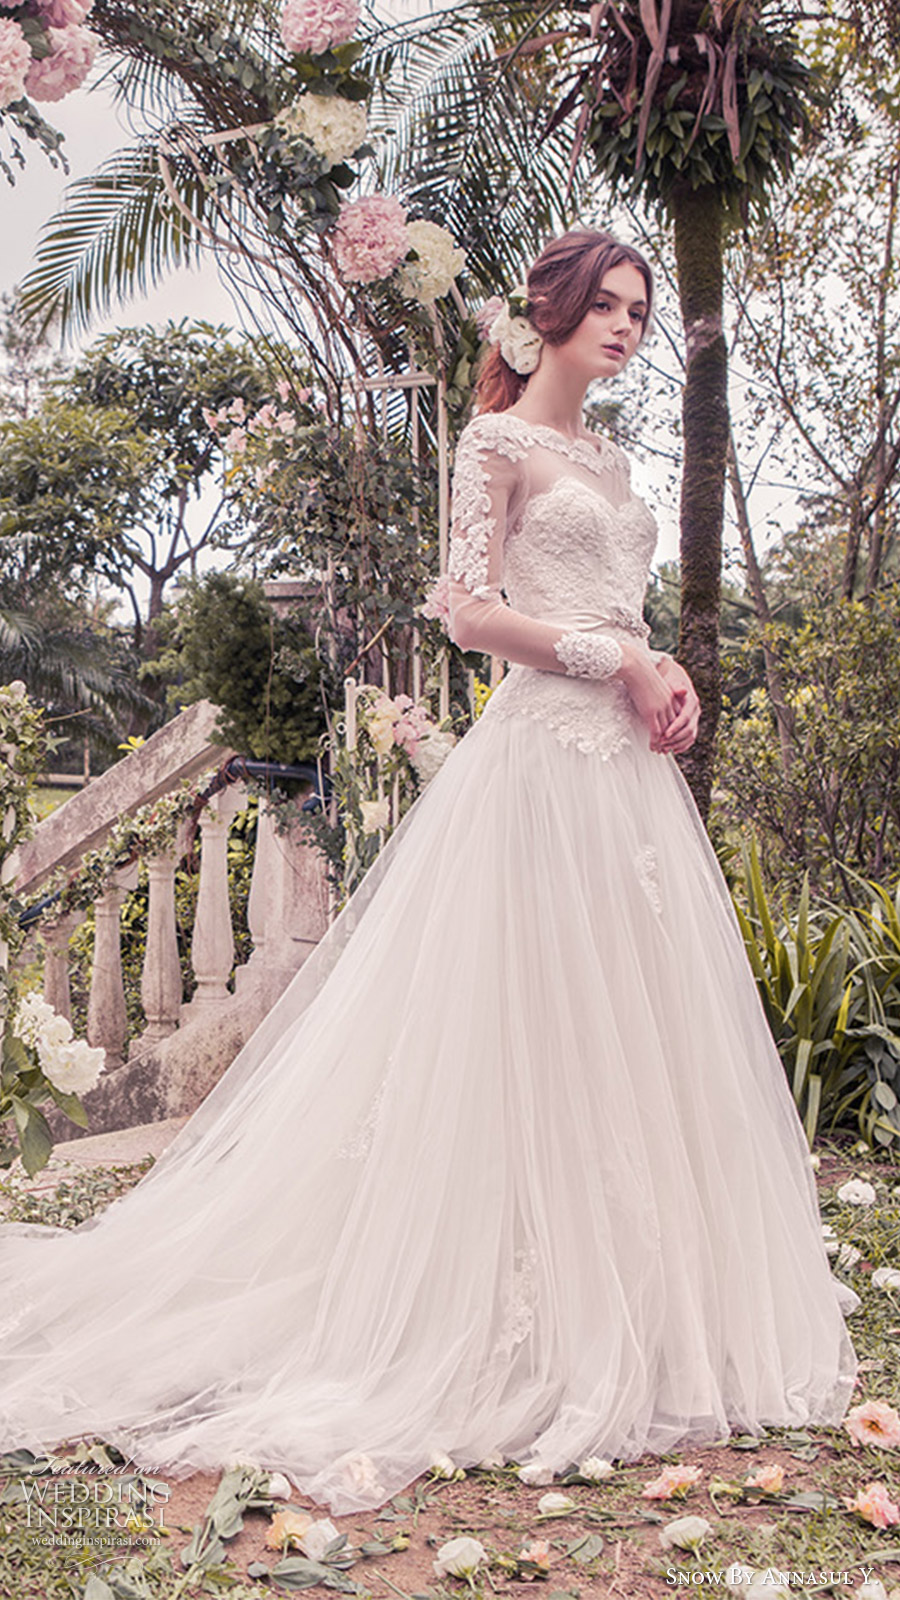 snow annasul y 2017 bridal (sa3253b) long sleeves illusion bateau sweetheart lace bodice ball gown wedding dress zv romantic